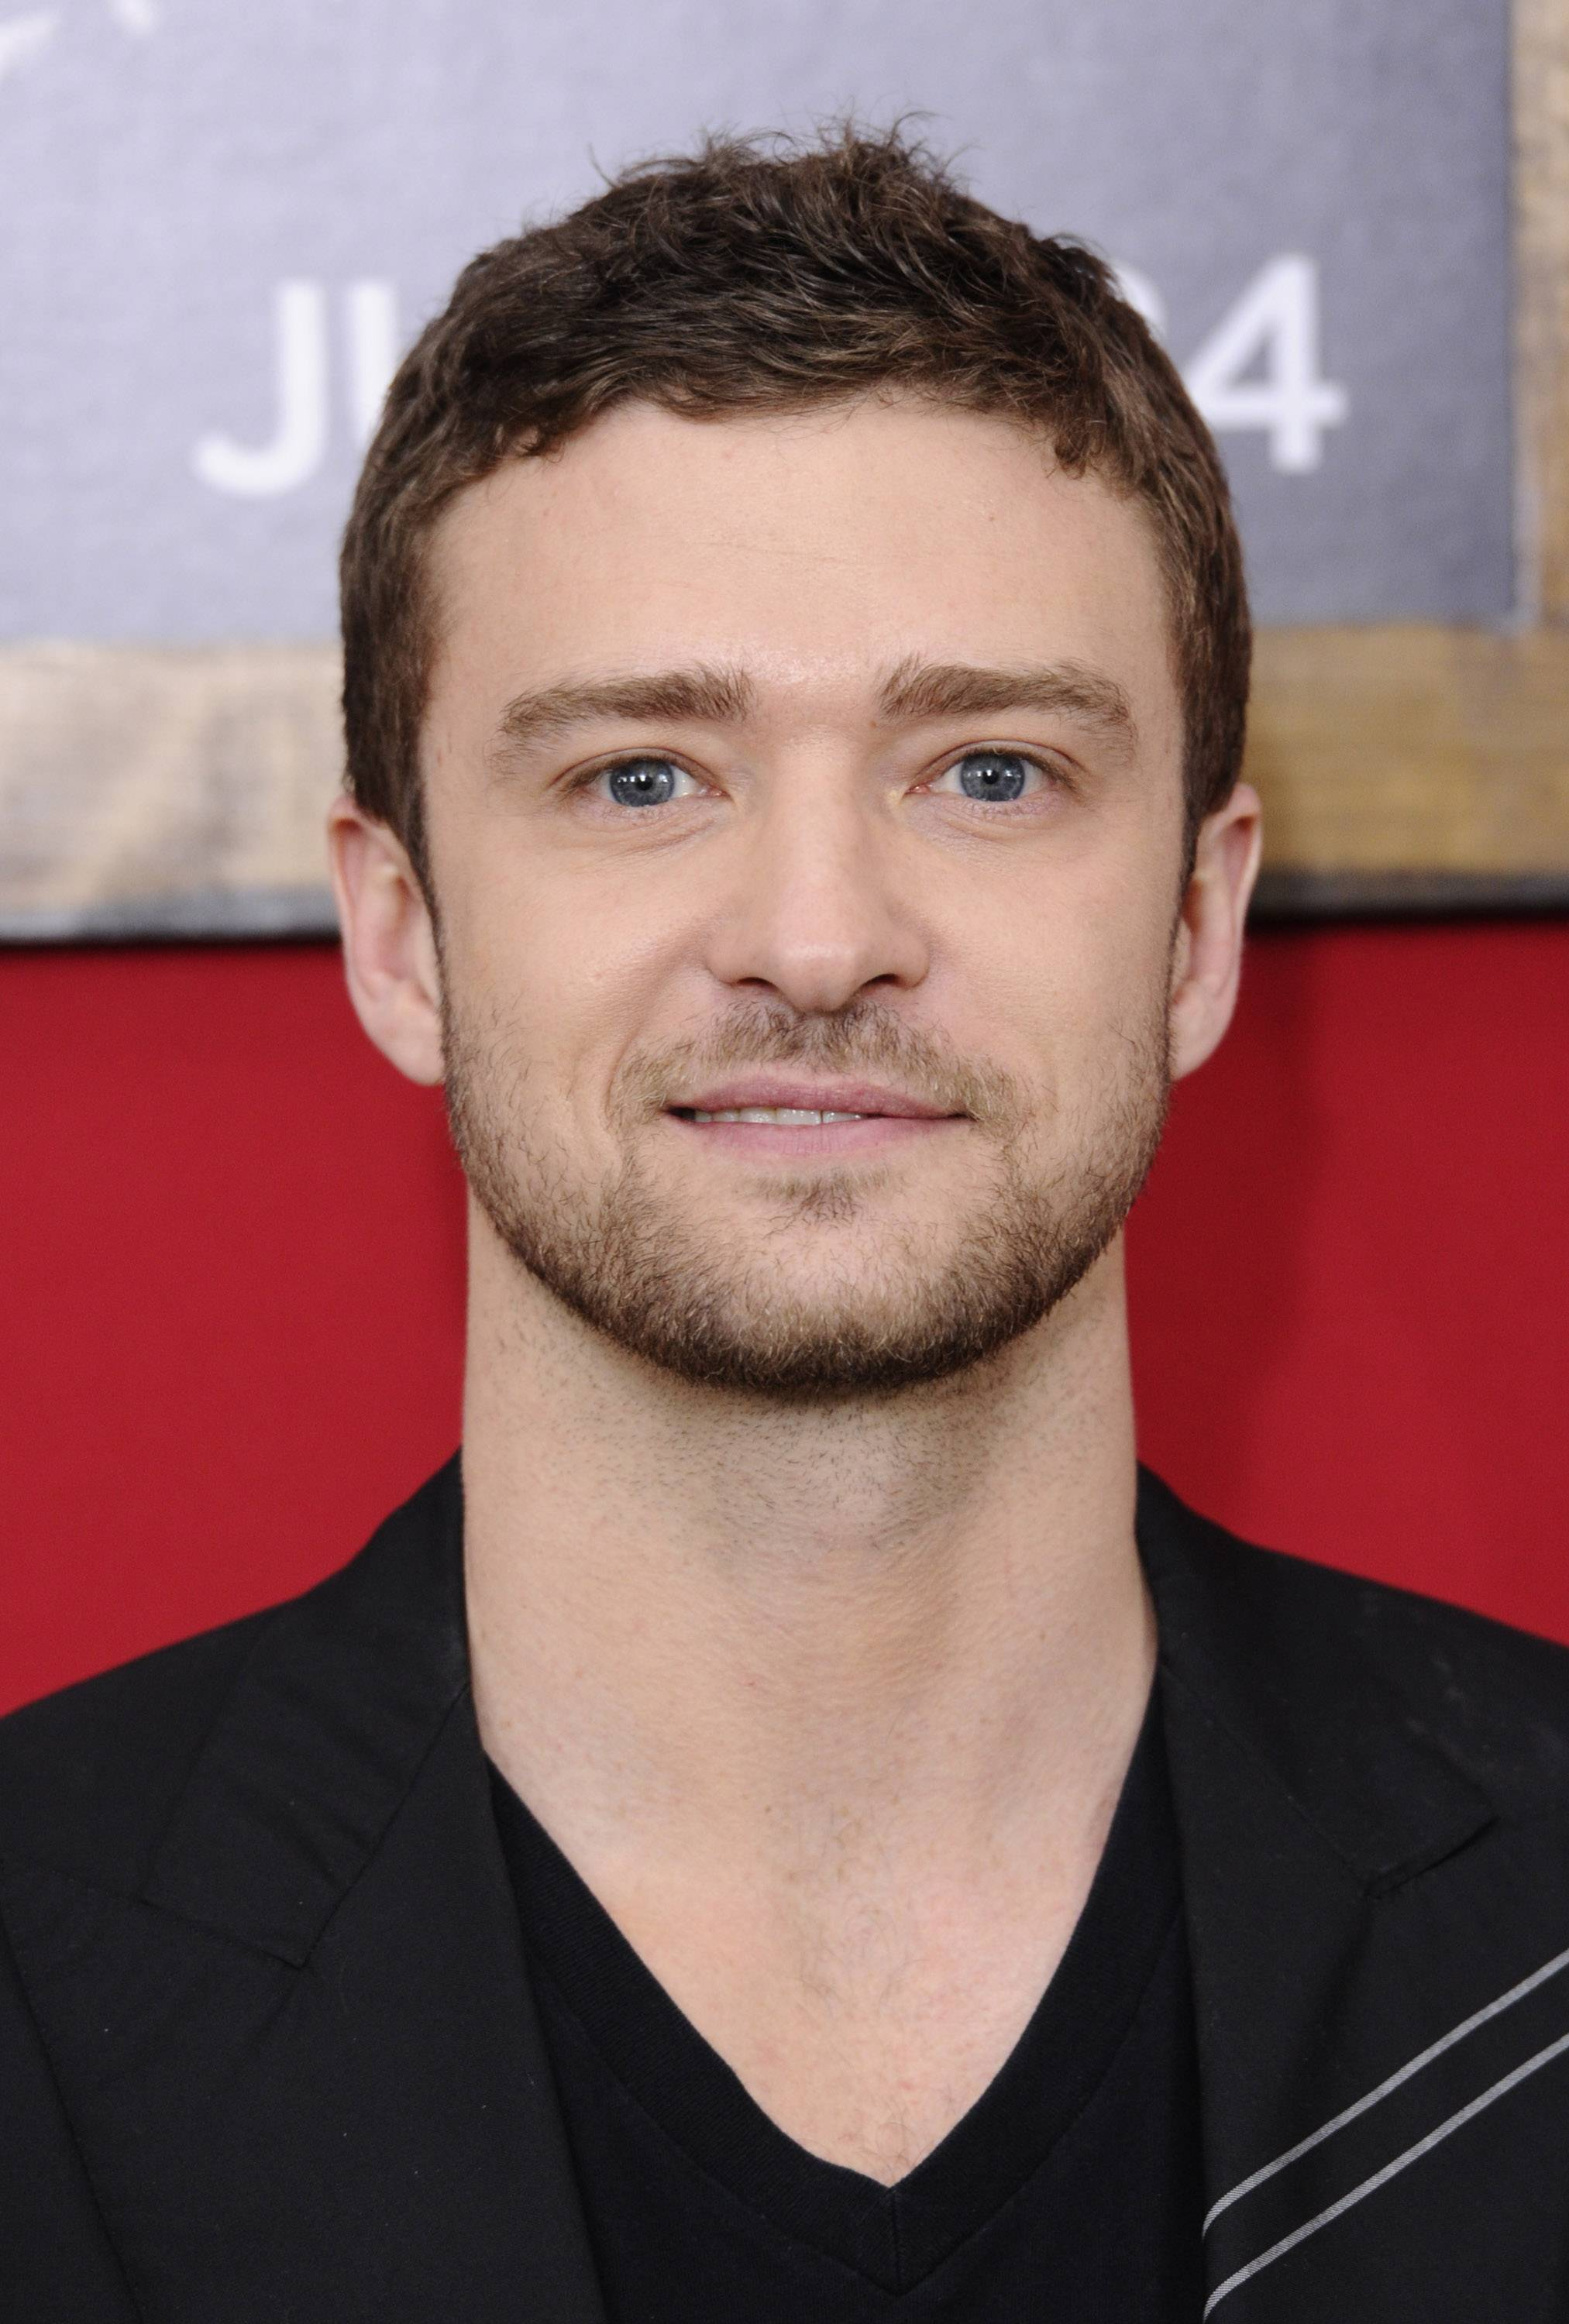 Pop star Justin Timberlake has joined a group buying MySpace in the hopes of reviving the downtrodden social media website.